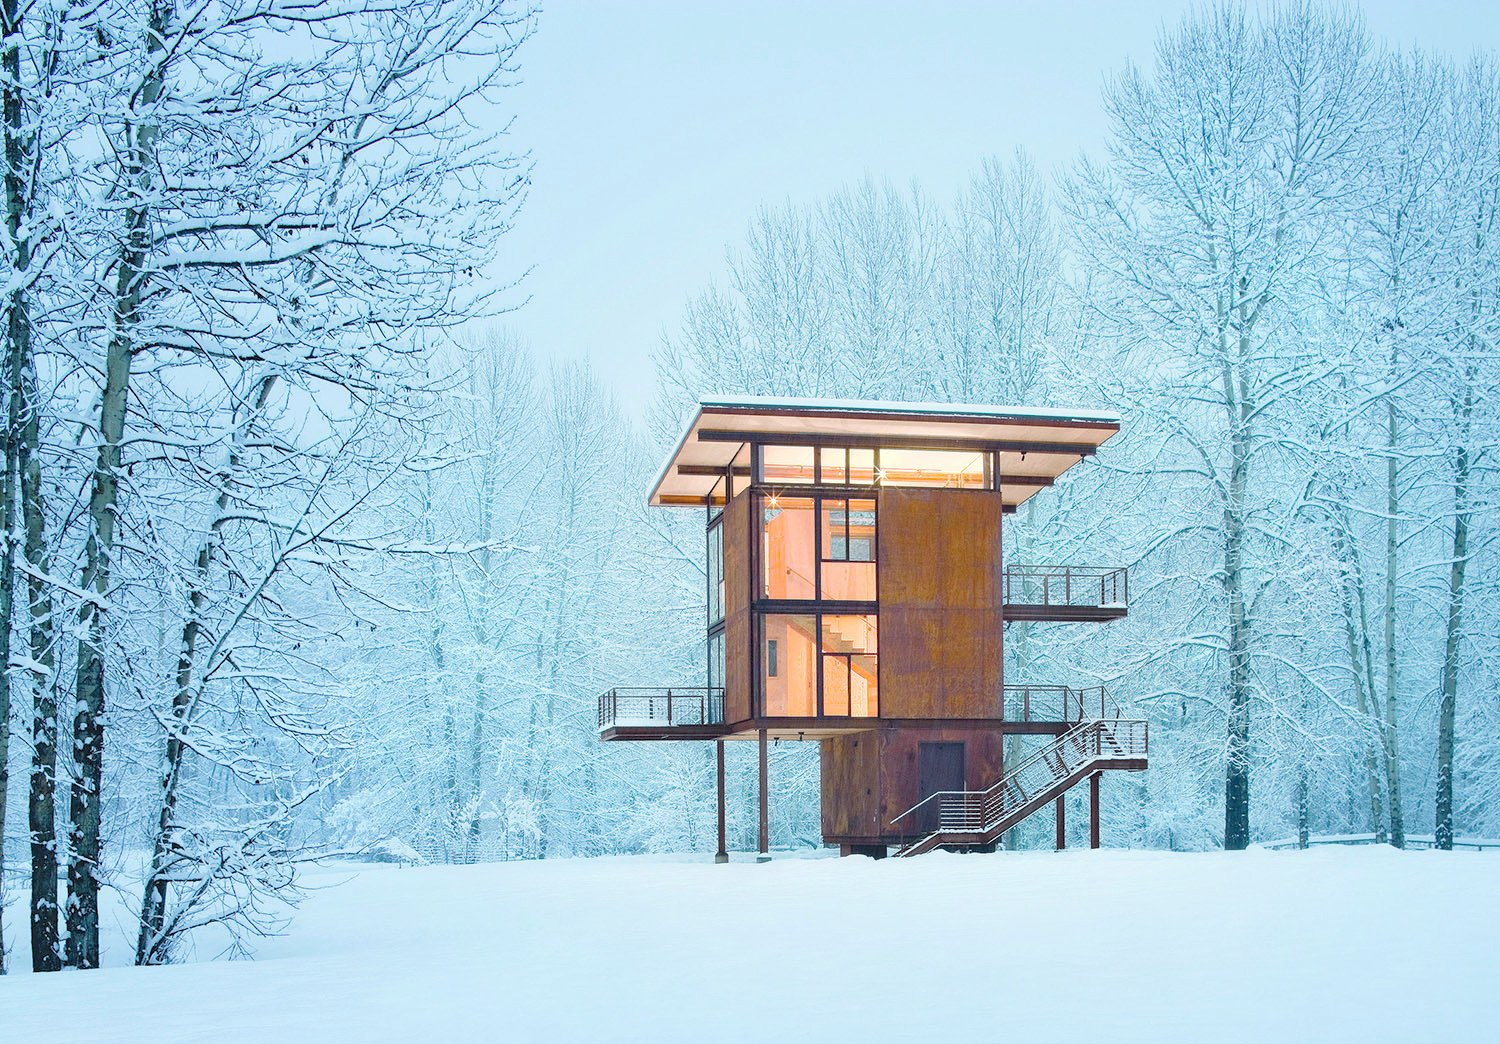 Olson Kundig Architects' Delta Shelter, in Mazama, Washington, is a 1,000 square-foot steel box home with a 200 square-foot footprint. Photo by Olson Sundberg Kundig Allen Architects/TASCHEN. Off the grid by Michela O'Connor Abrams